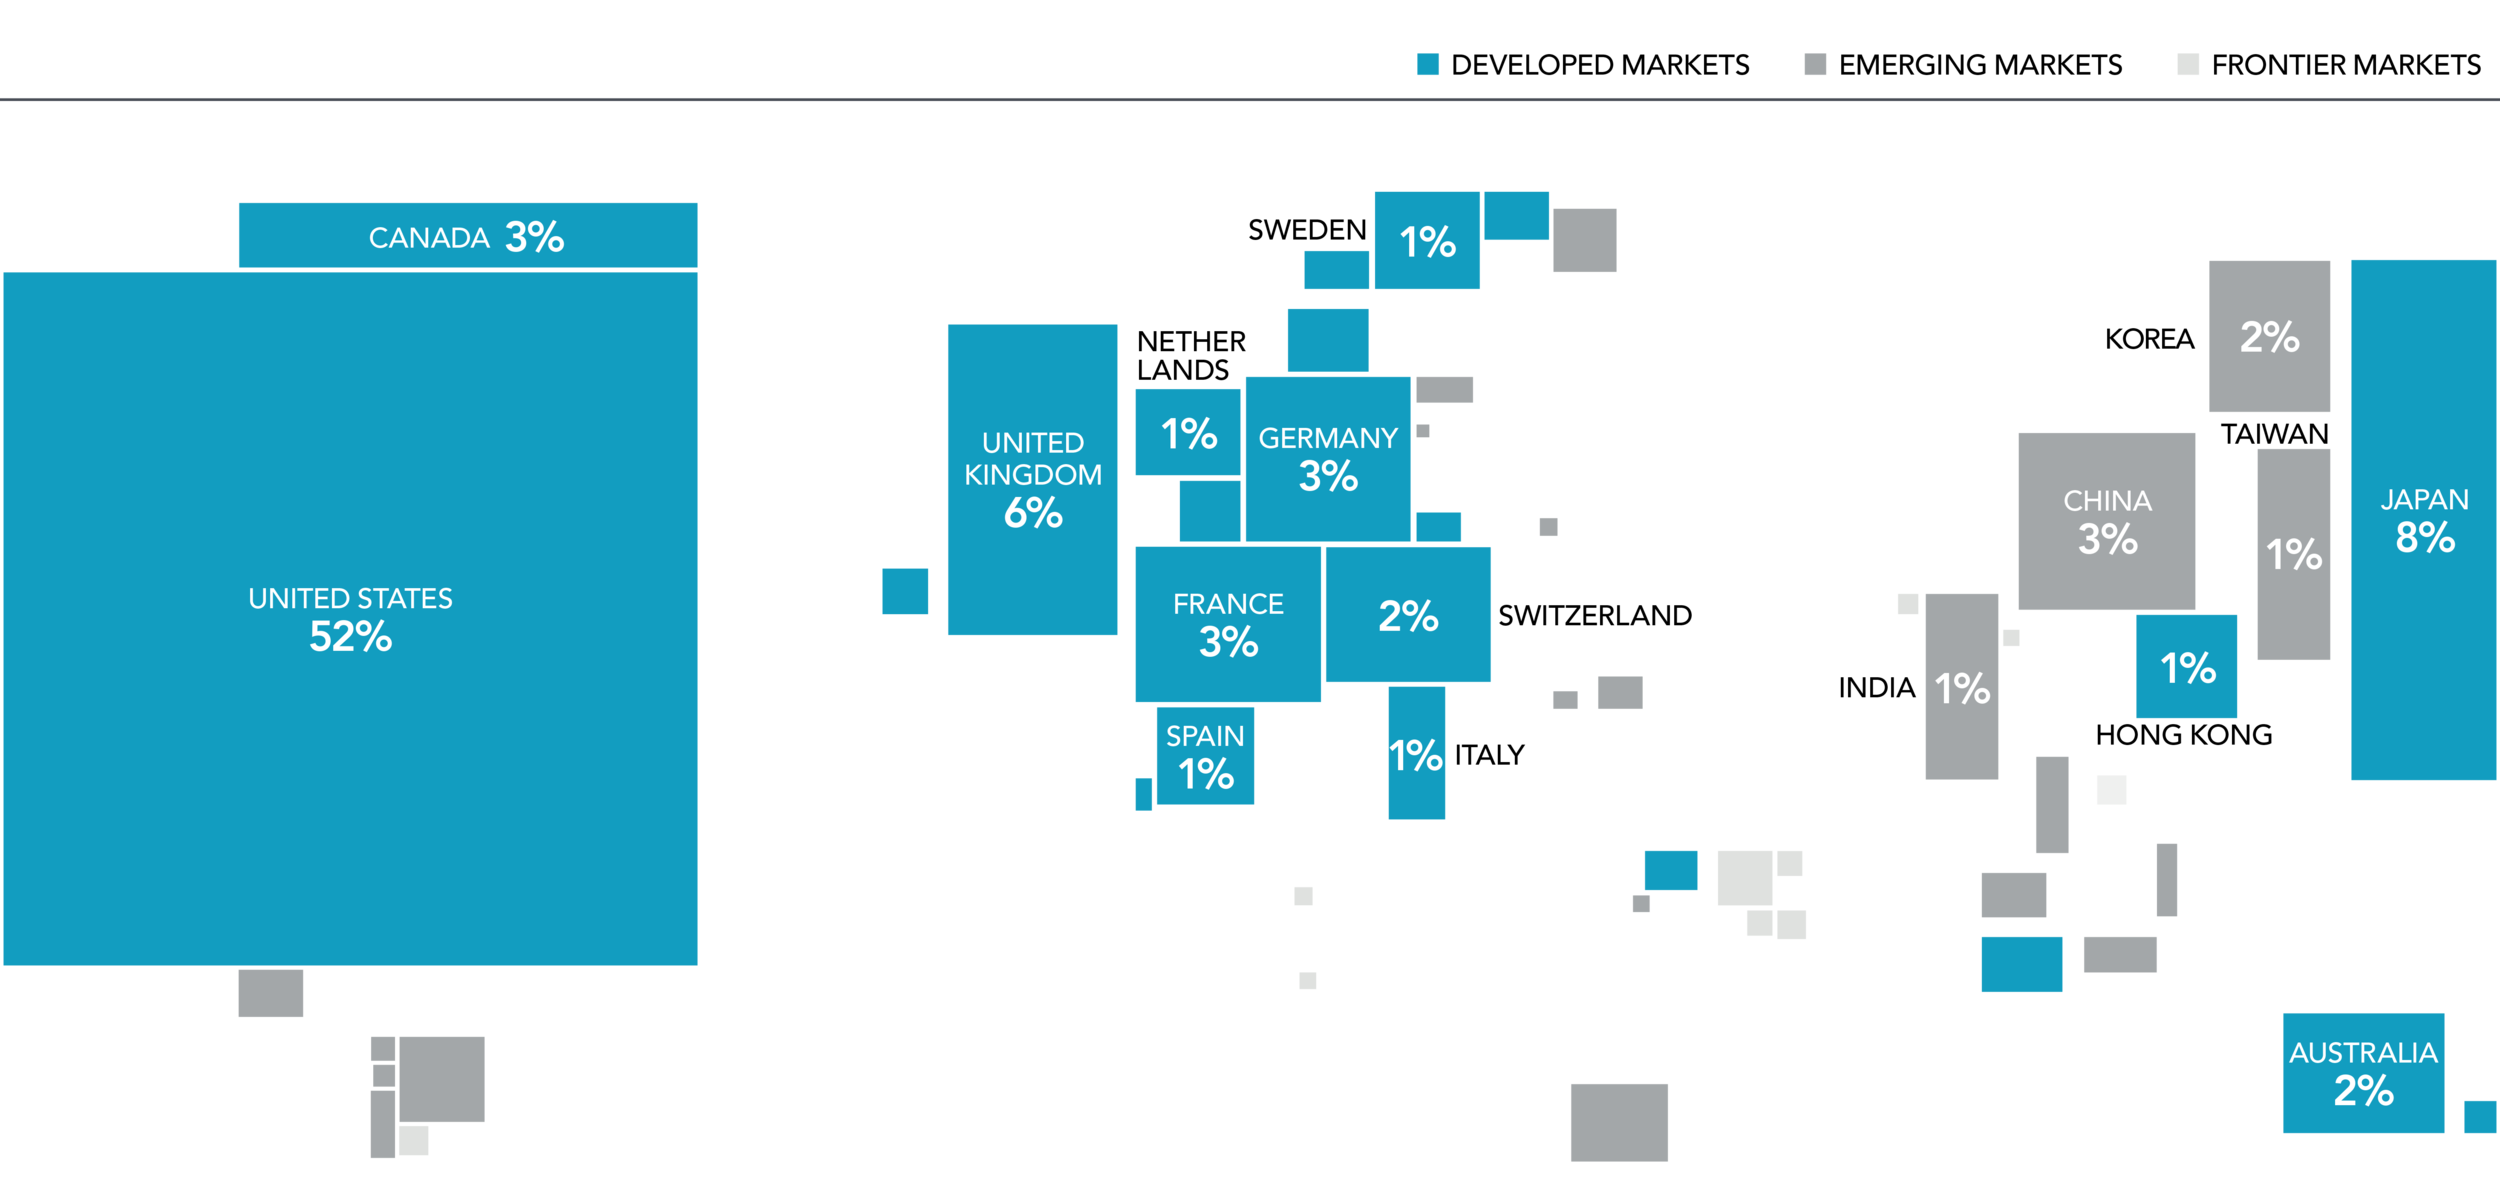 Exhibit 1.  World Equity Market Capitalization  As of December 31, 2017. Data provided by Bloomberg. Market cap data is free-float adjusted and meets minimum liquidity and listing requirements. China market capitalization excludes A-shares, which are generally only available to mainland China investors. For educational purposes; should not be used as investment advice.